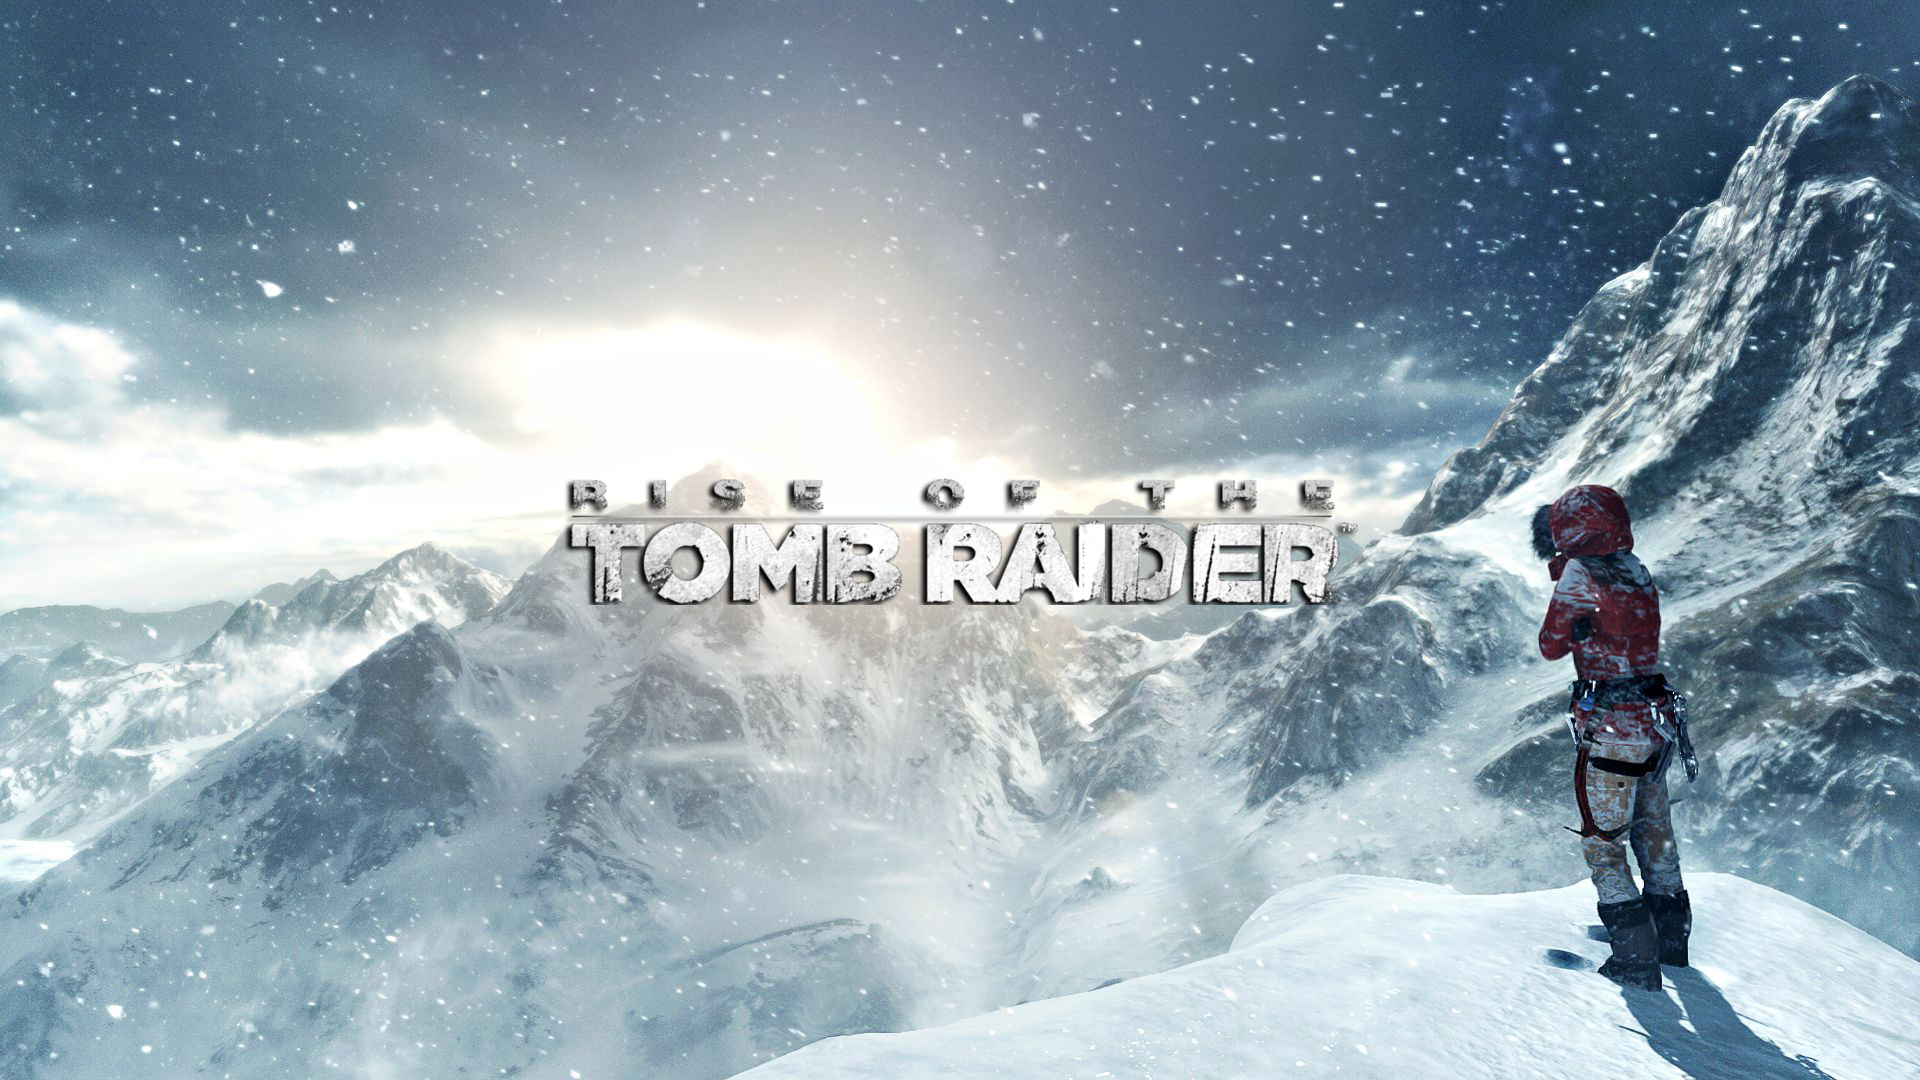 Tomb Raider Desktop Wallpaper Posted By Zoey Tremblay